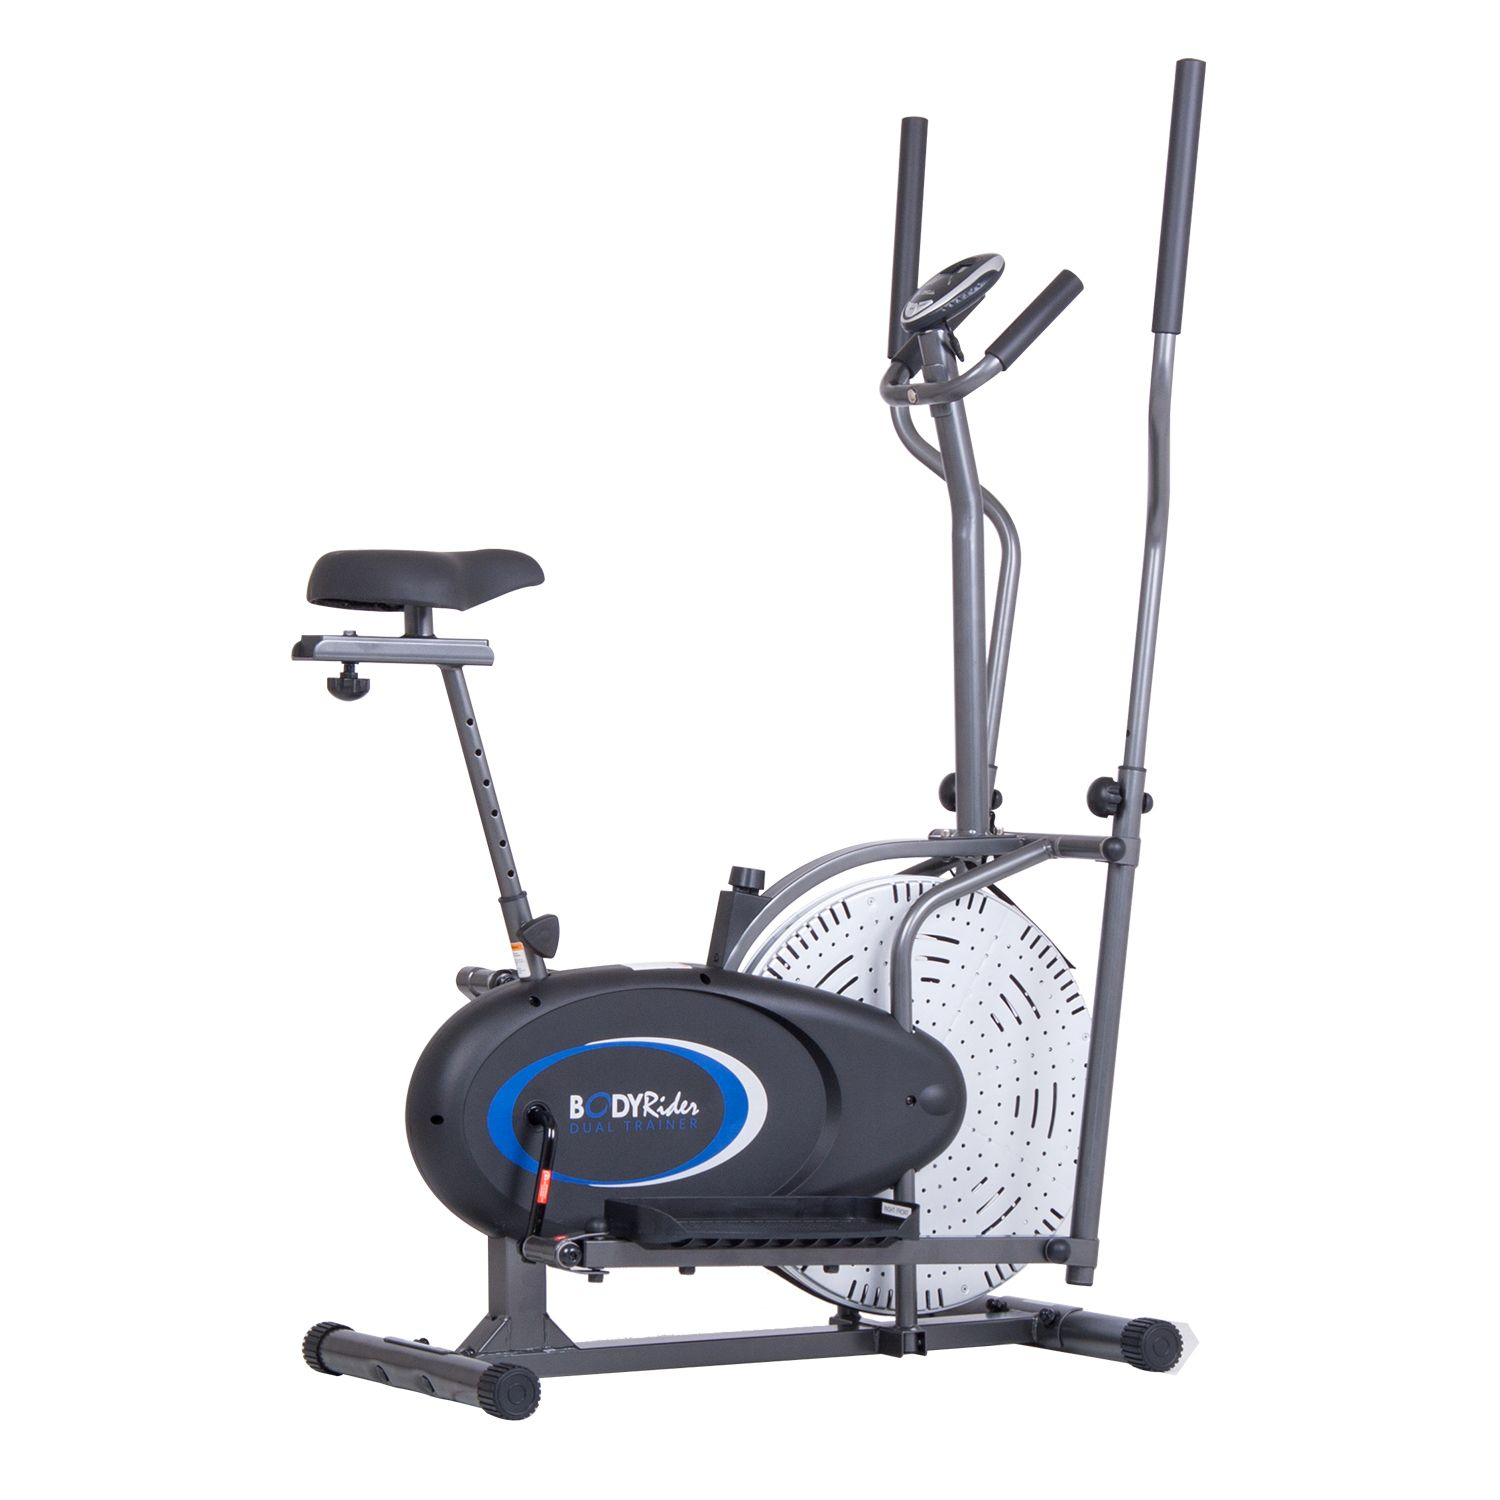 Body Rider BRD2835 2-in-1 Cardio Dual Trainer Elliptical & Upright Bike